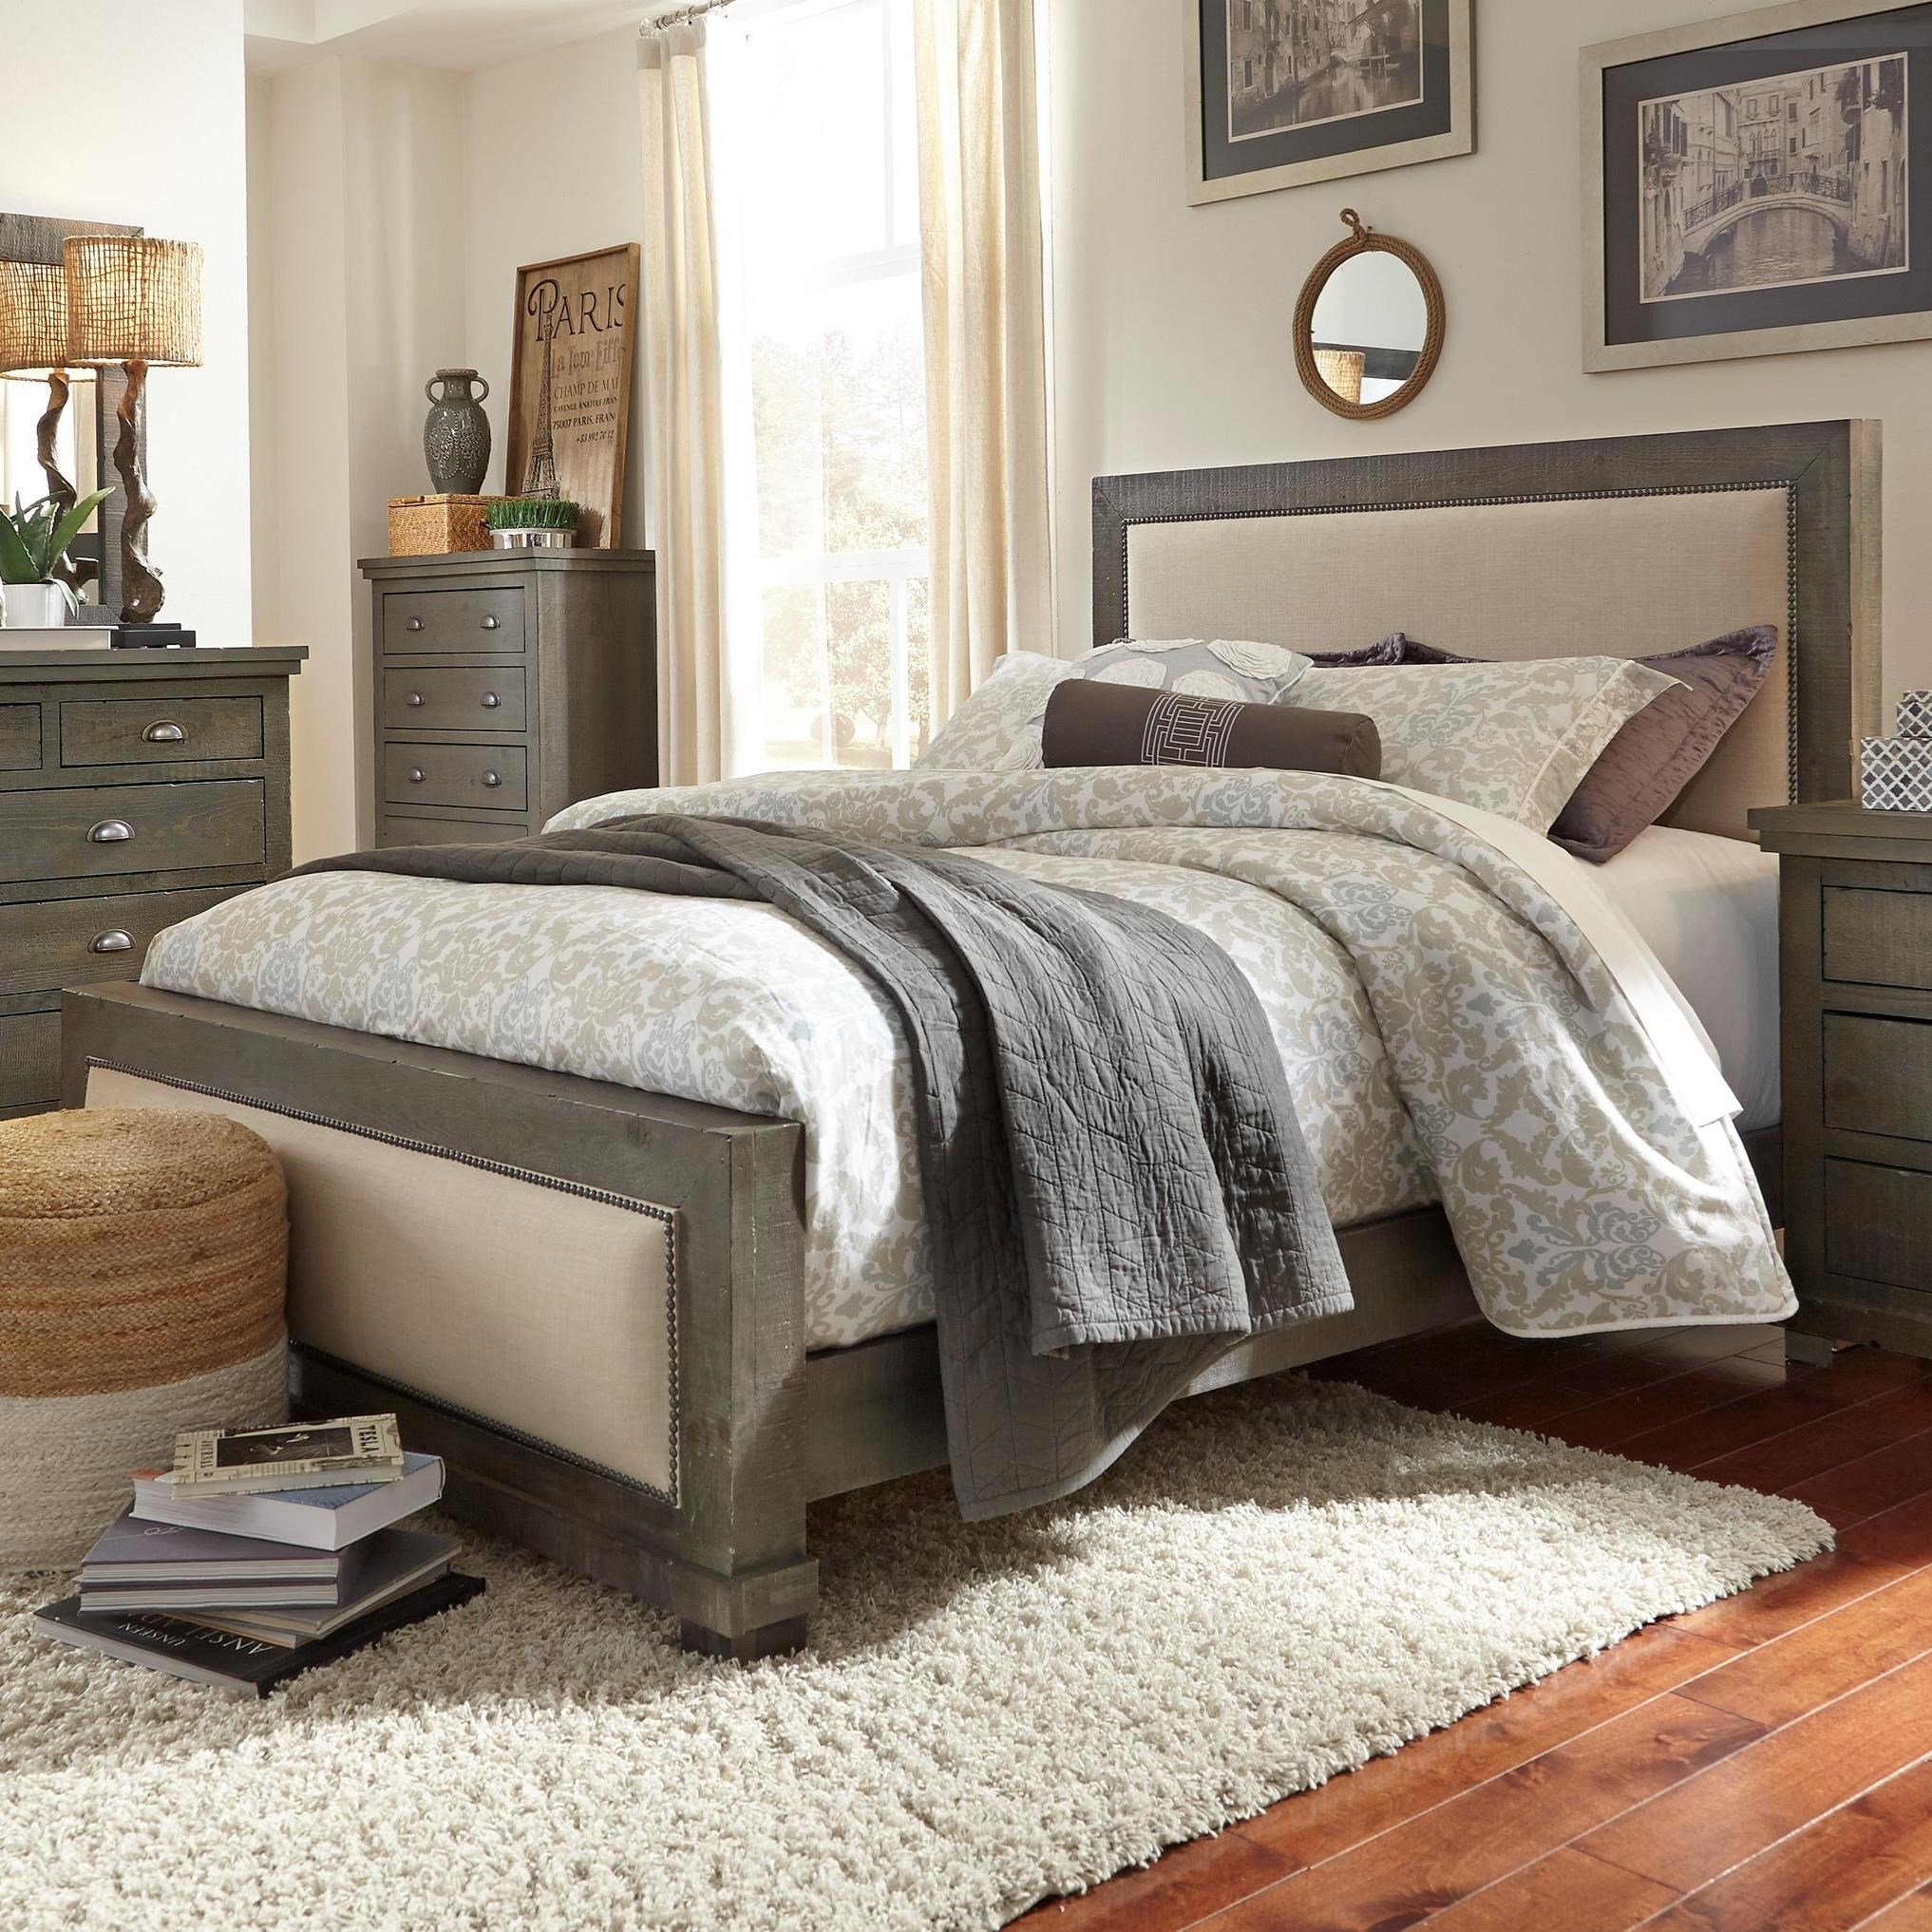 Progressive Furniture Willow Queen Upholstered Bed With Distressed Pine Frame Miskelly